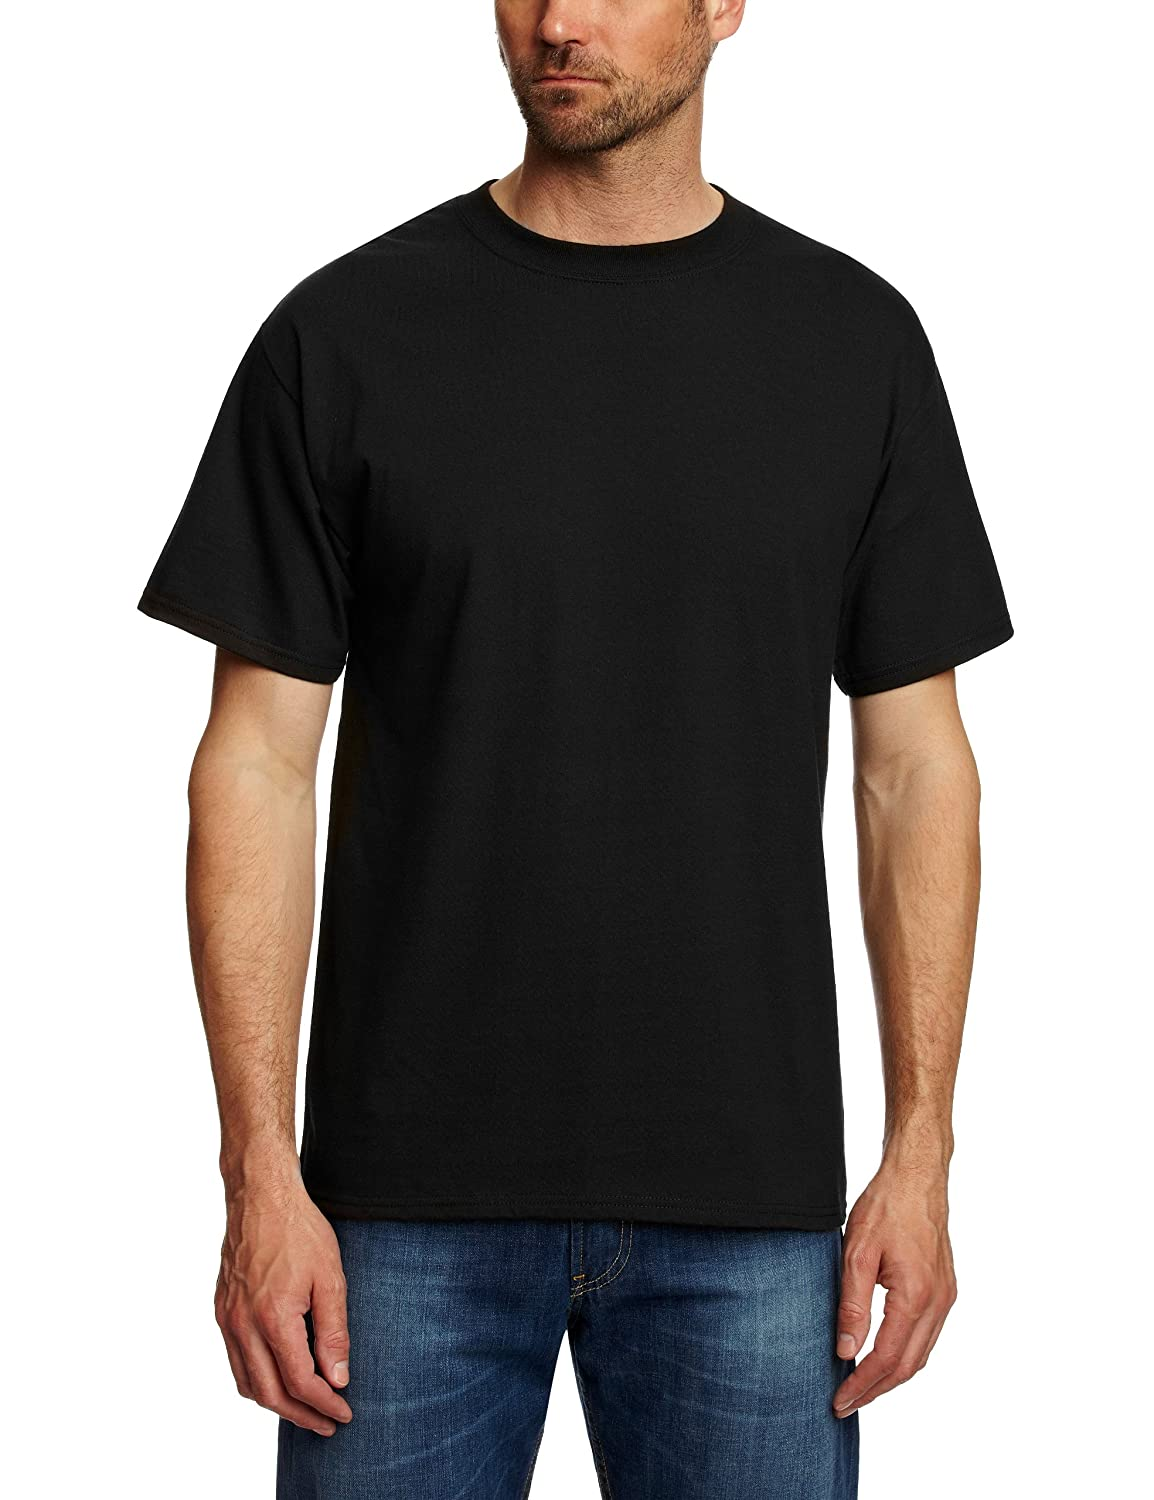 Kirkland black t shirts xl - Hanes Classic Beefy Men S T Shirt